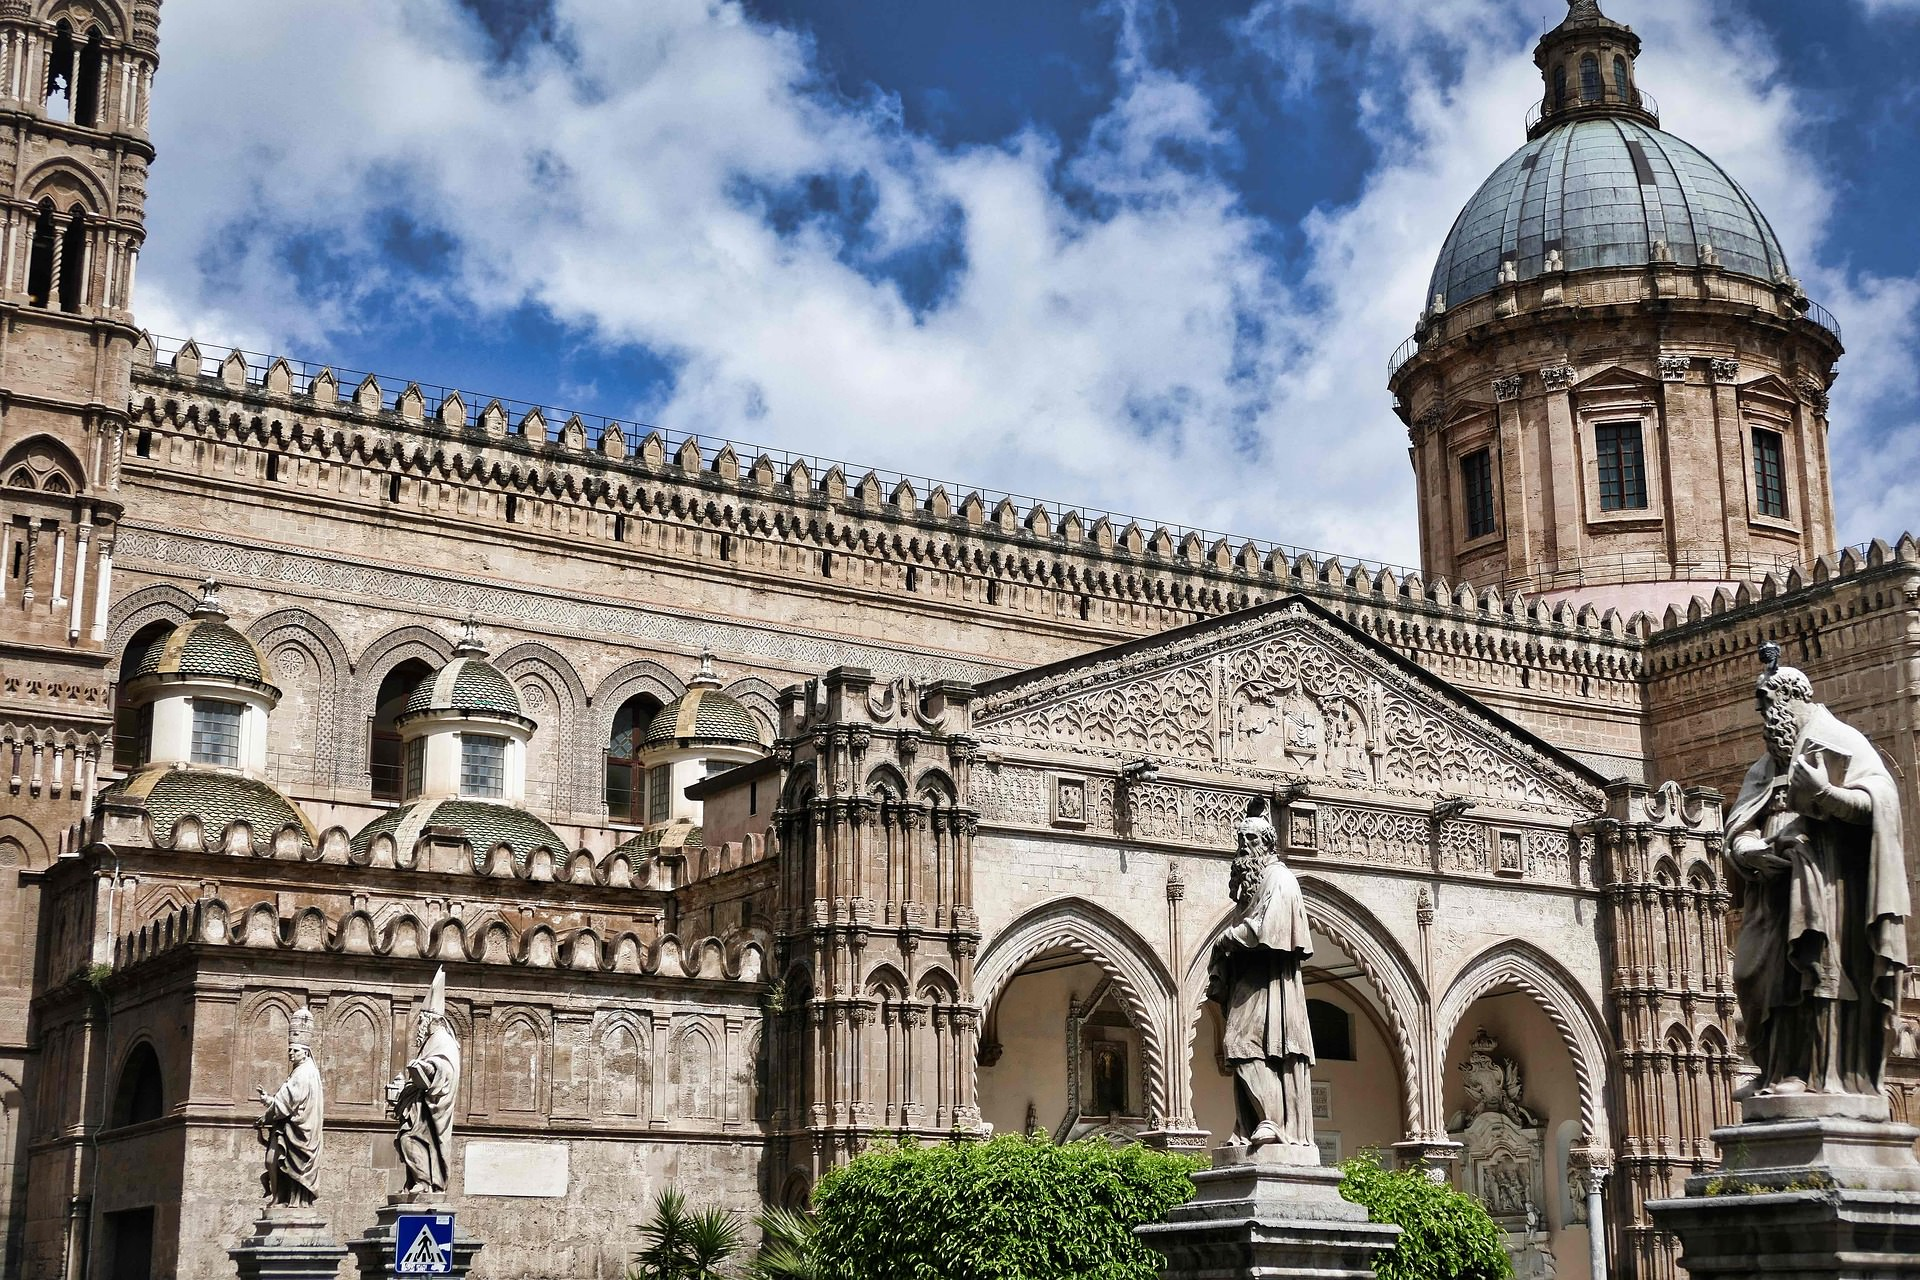 cathedral-4174508_1920.jpg Sicily